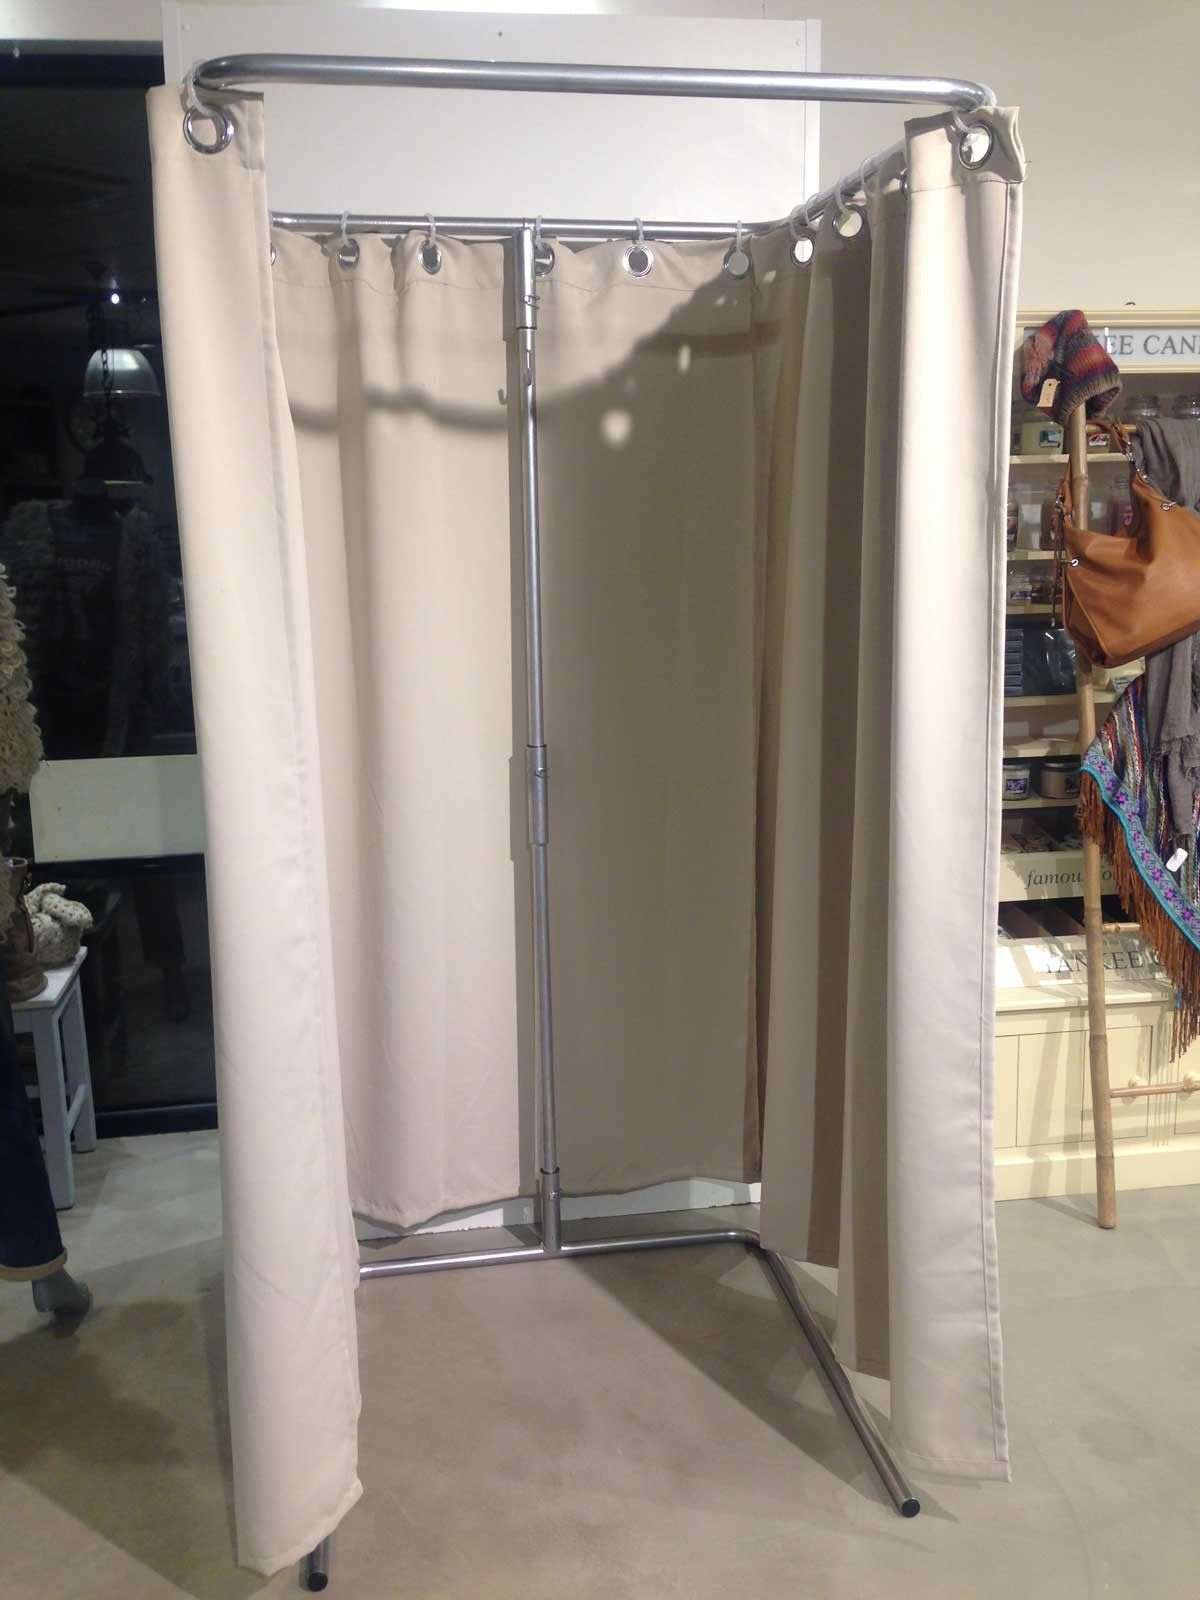 prodigious How To Make A Portable Dressing Room Part - 1: diy portable changing room - Google Search